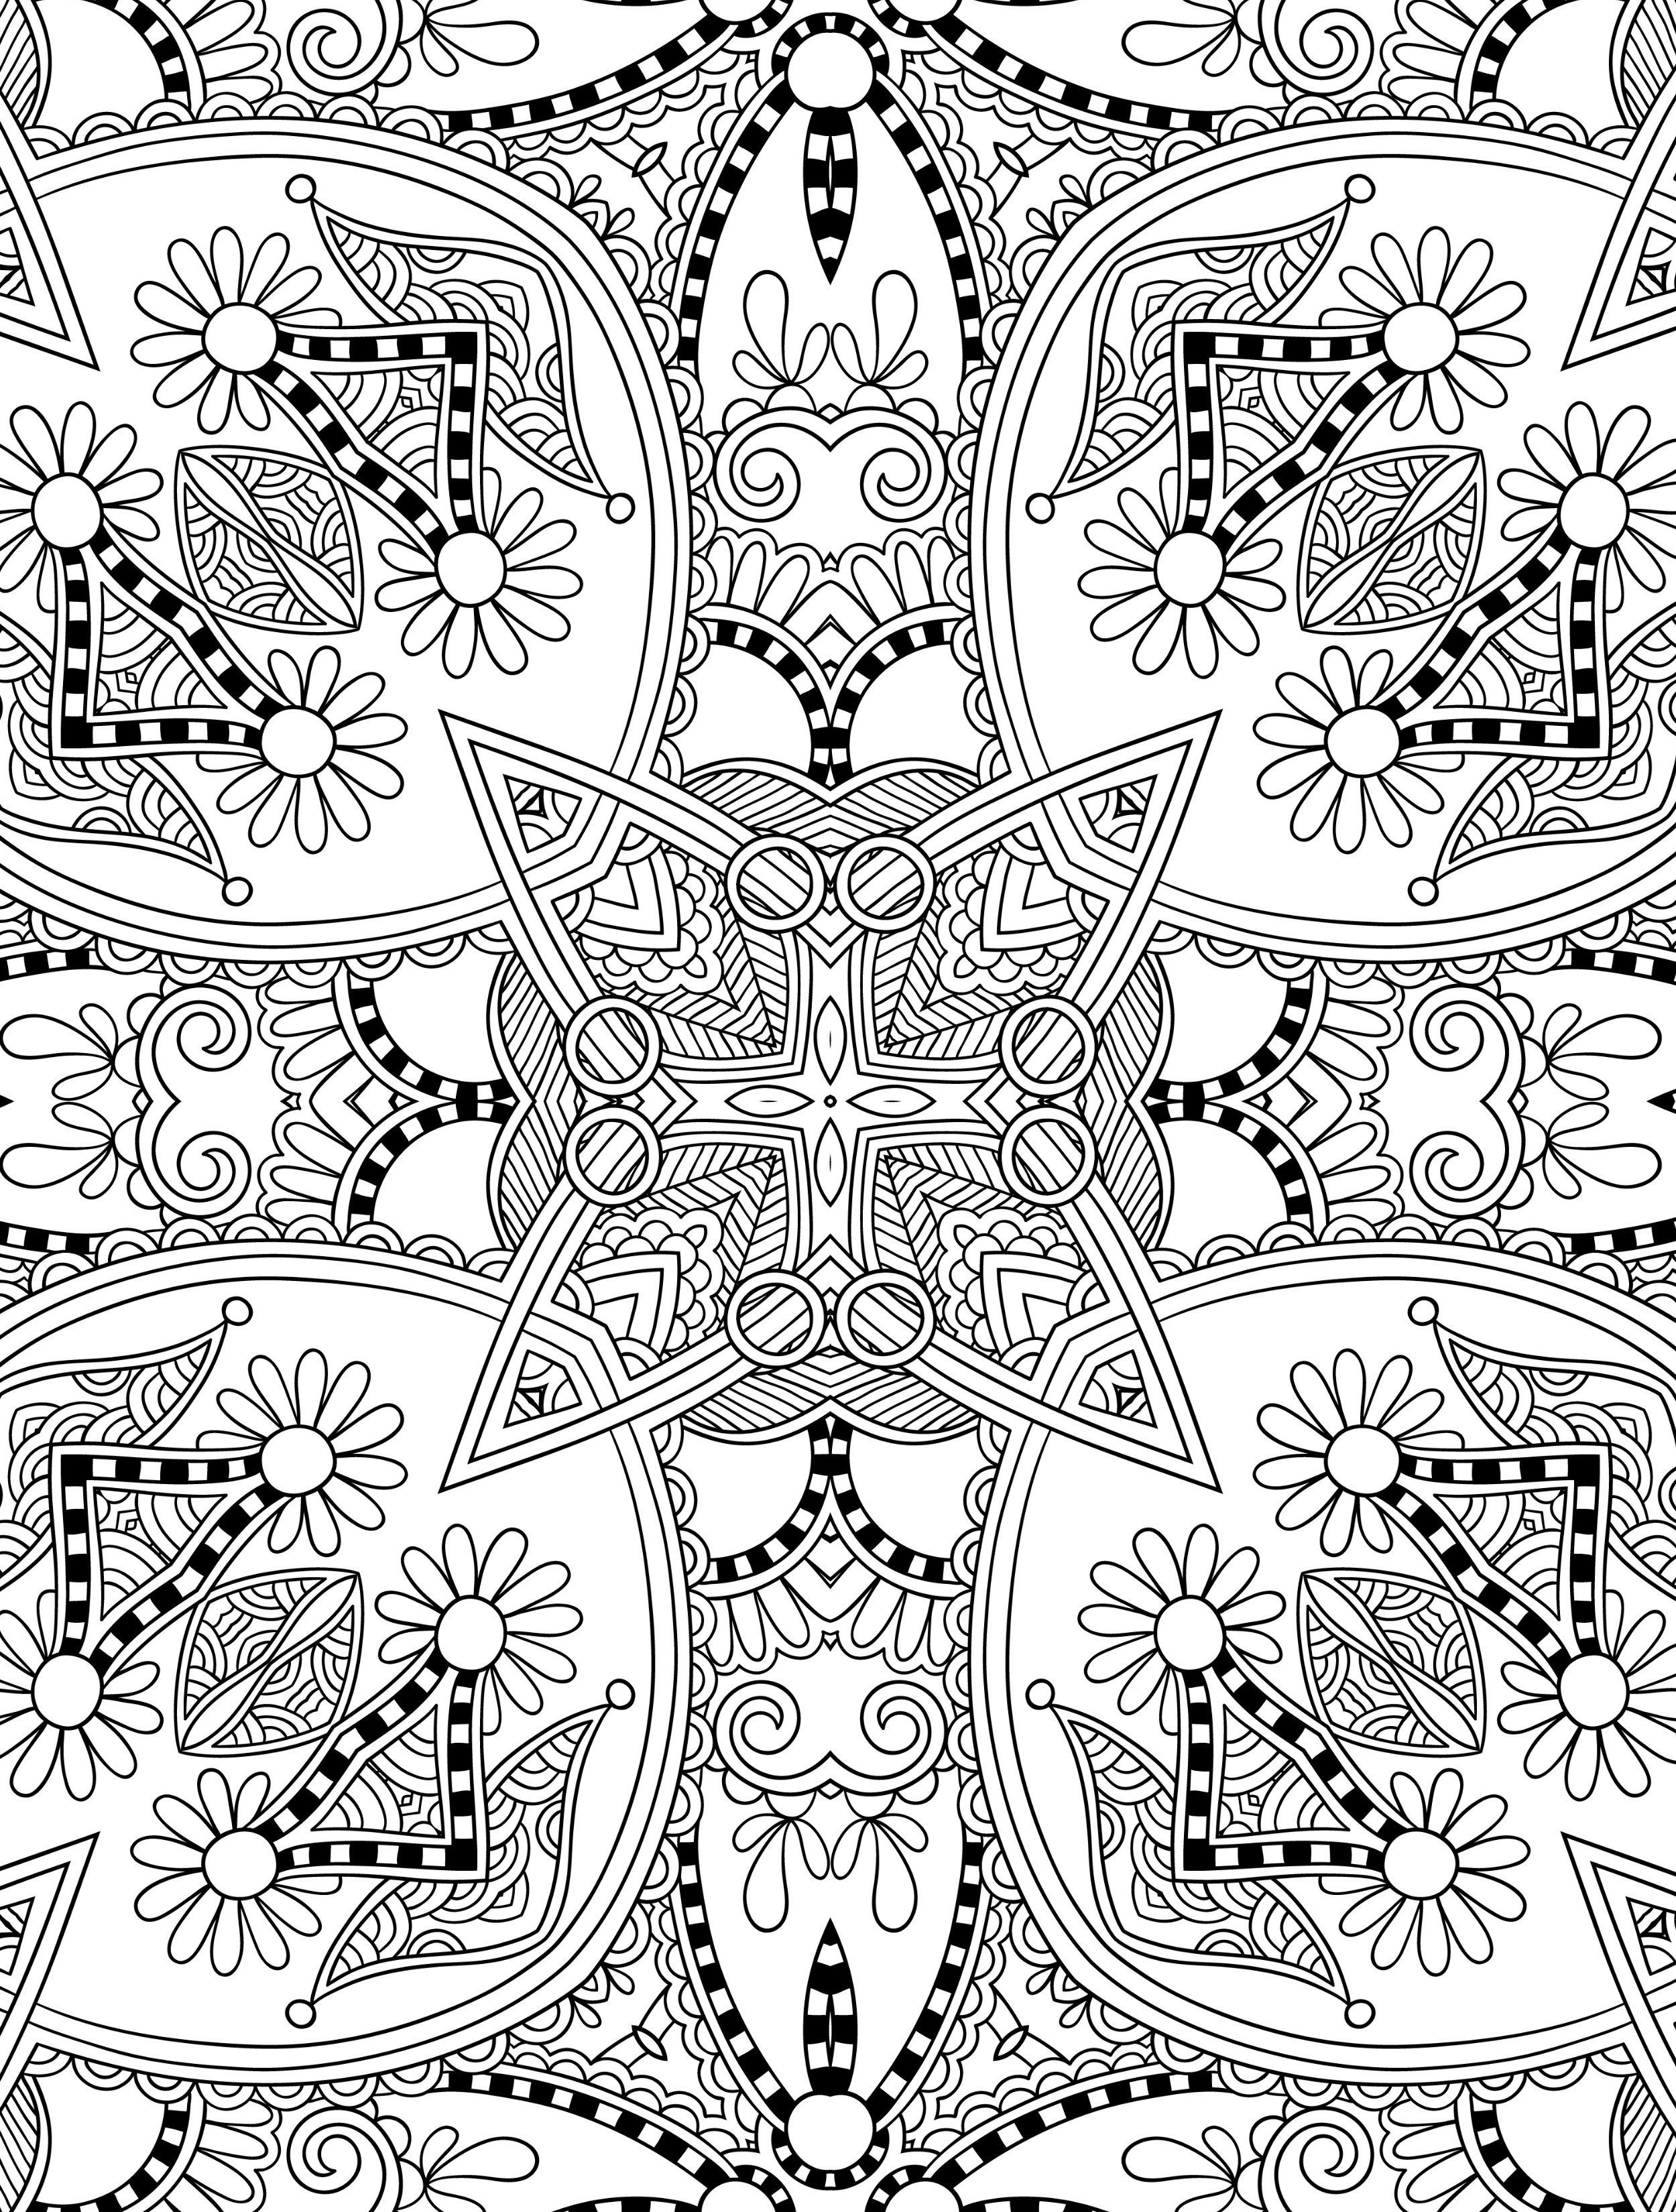 10 Free Printable Holiday Adult Coloring Pages | Colorear y Mandalas